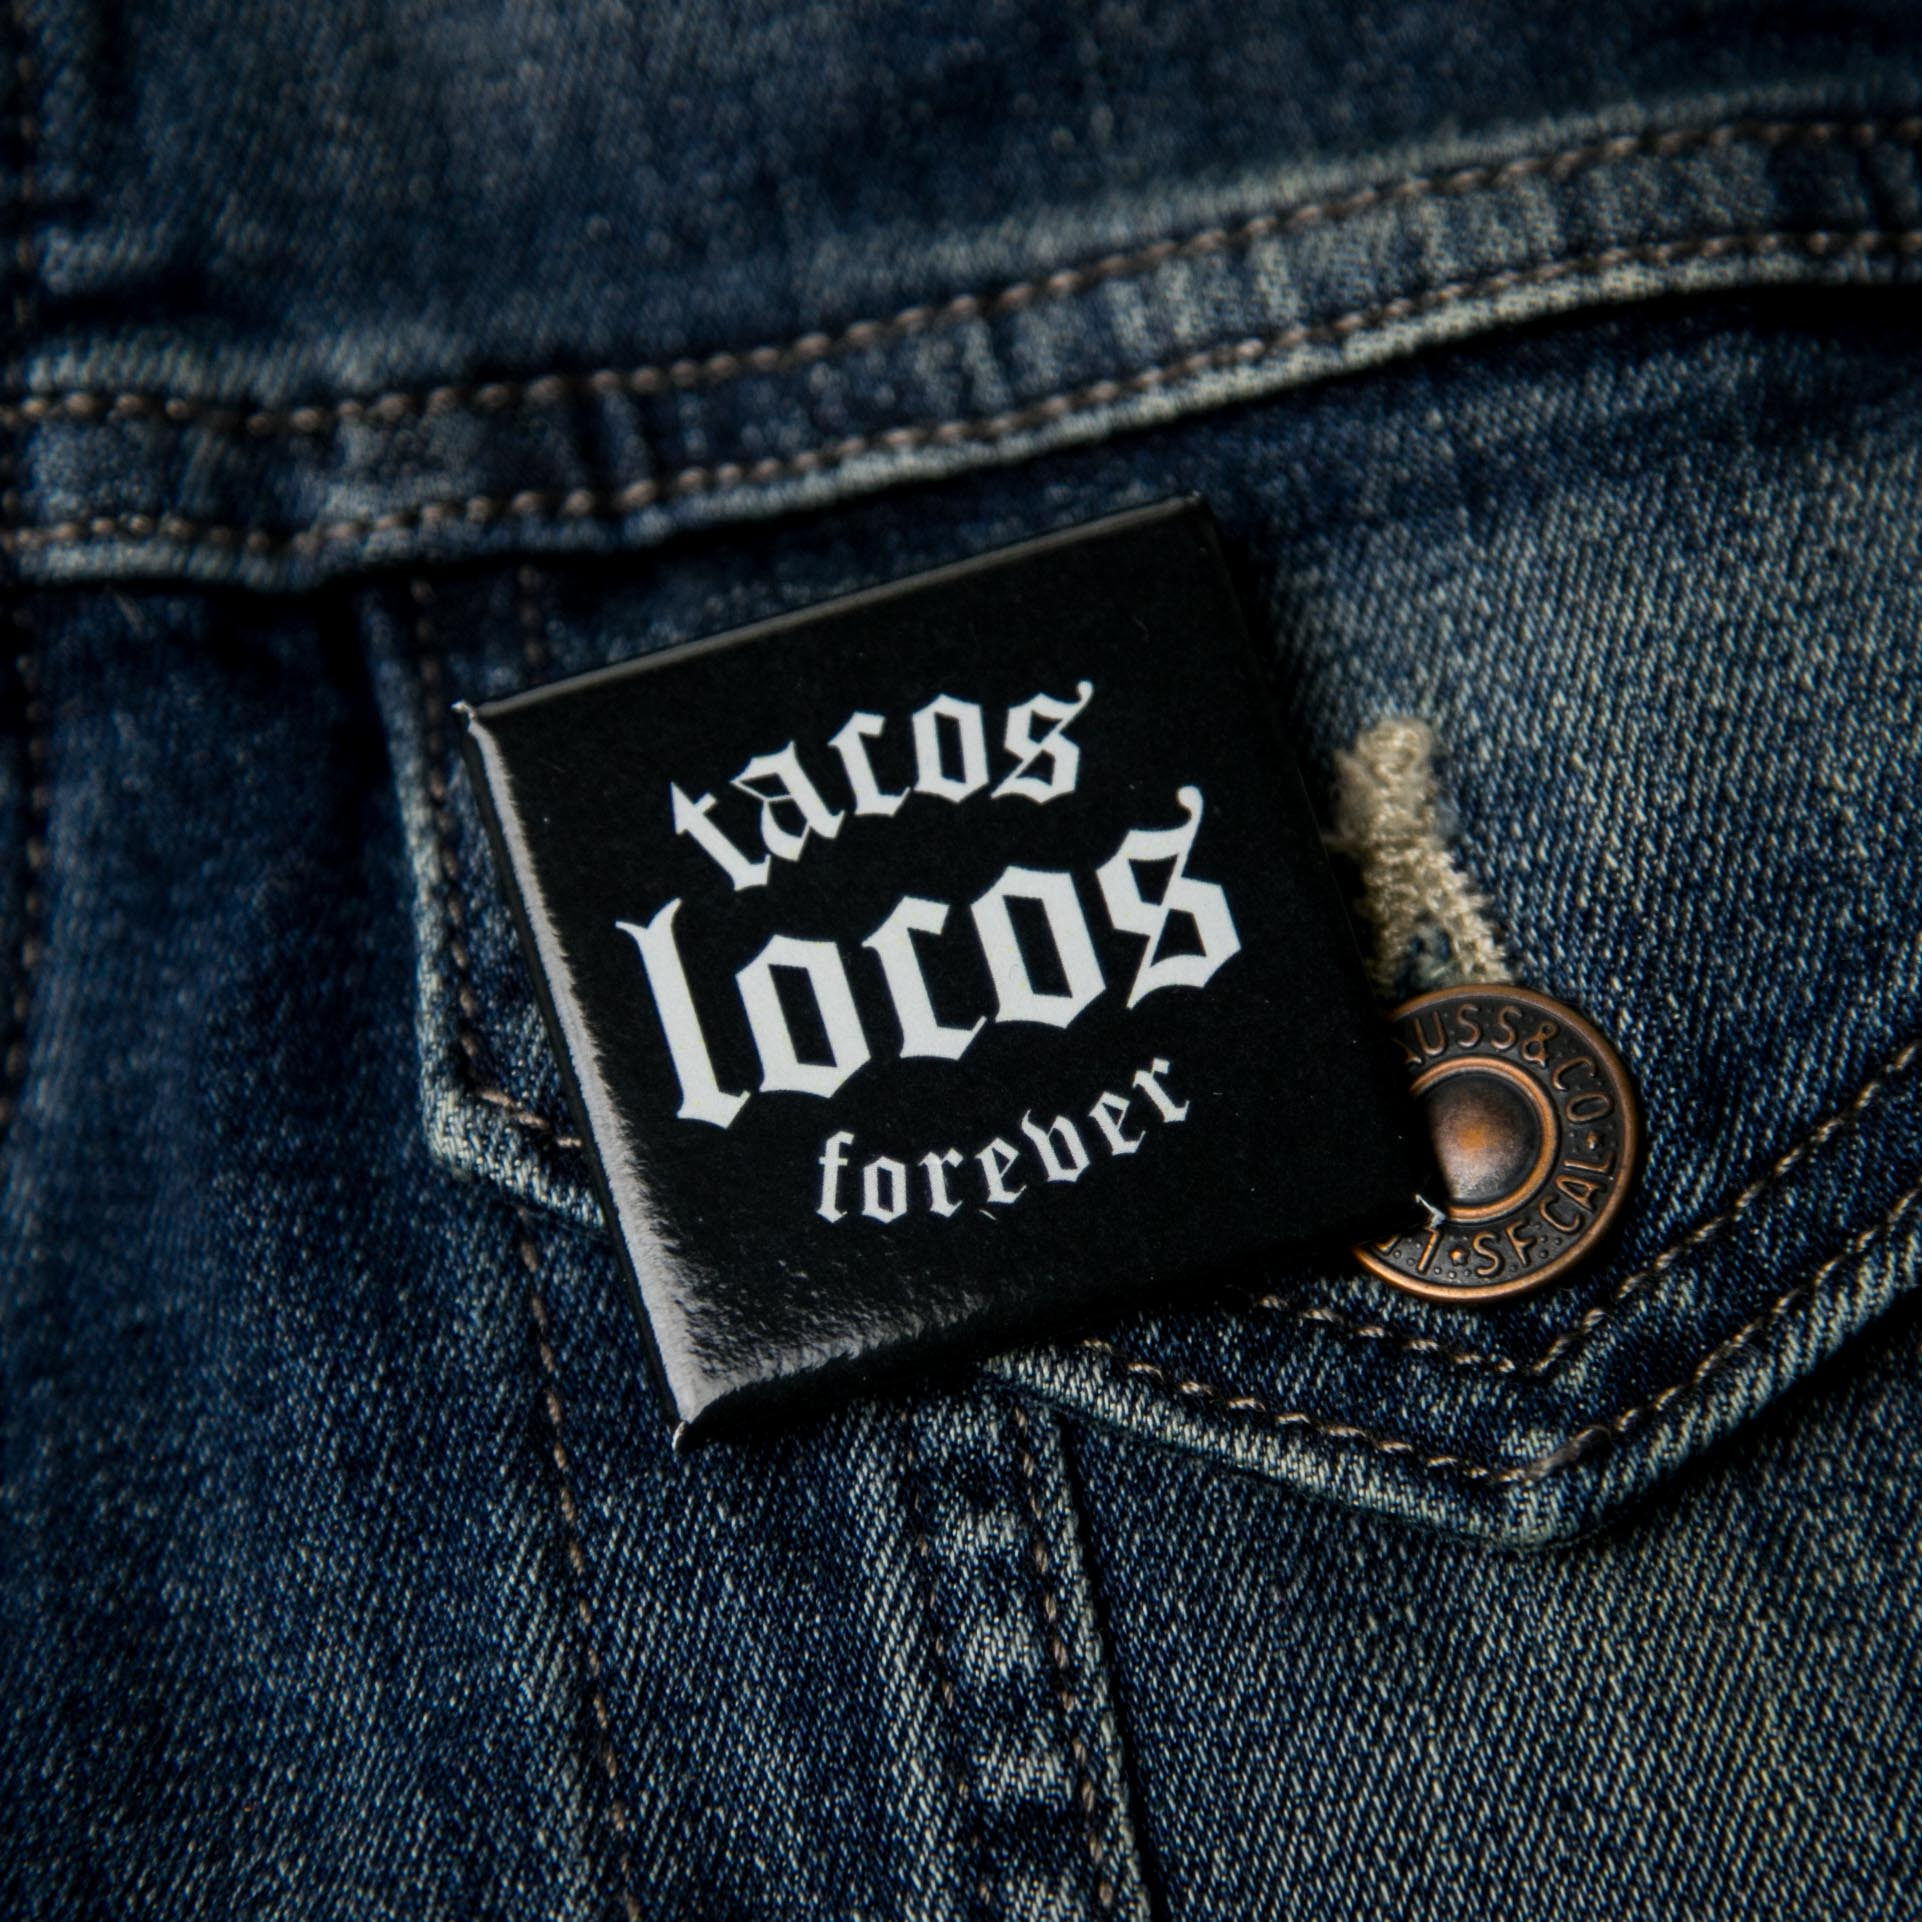 Tacos Lovos Forever Button